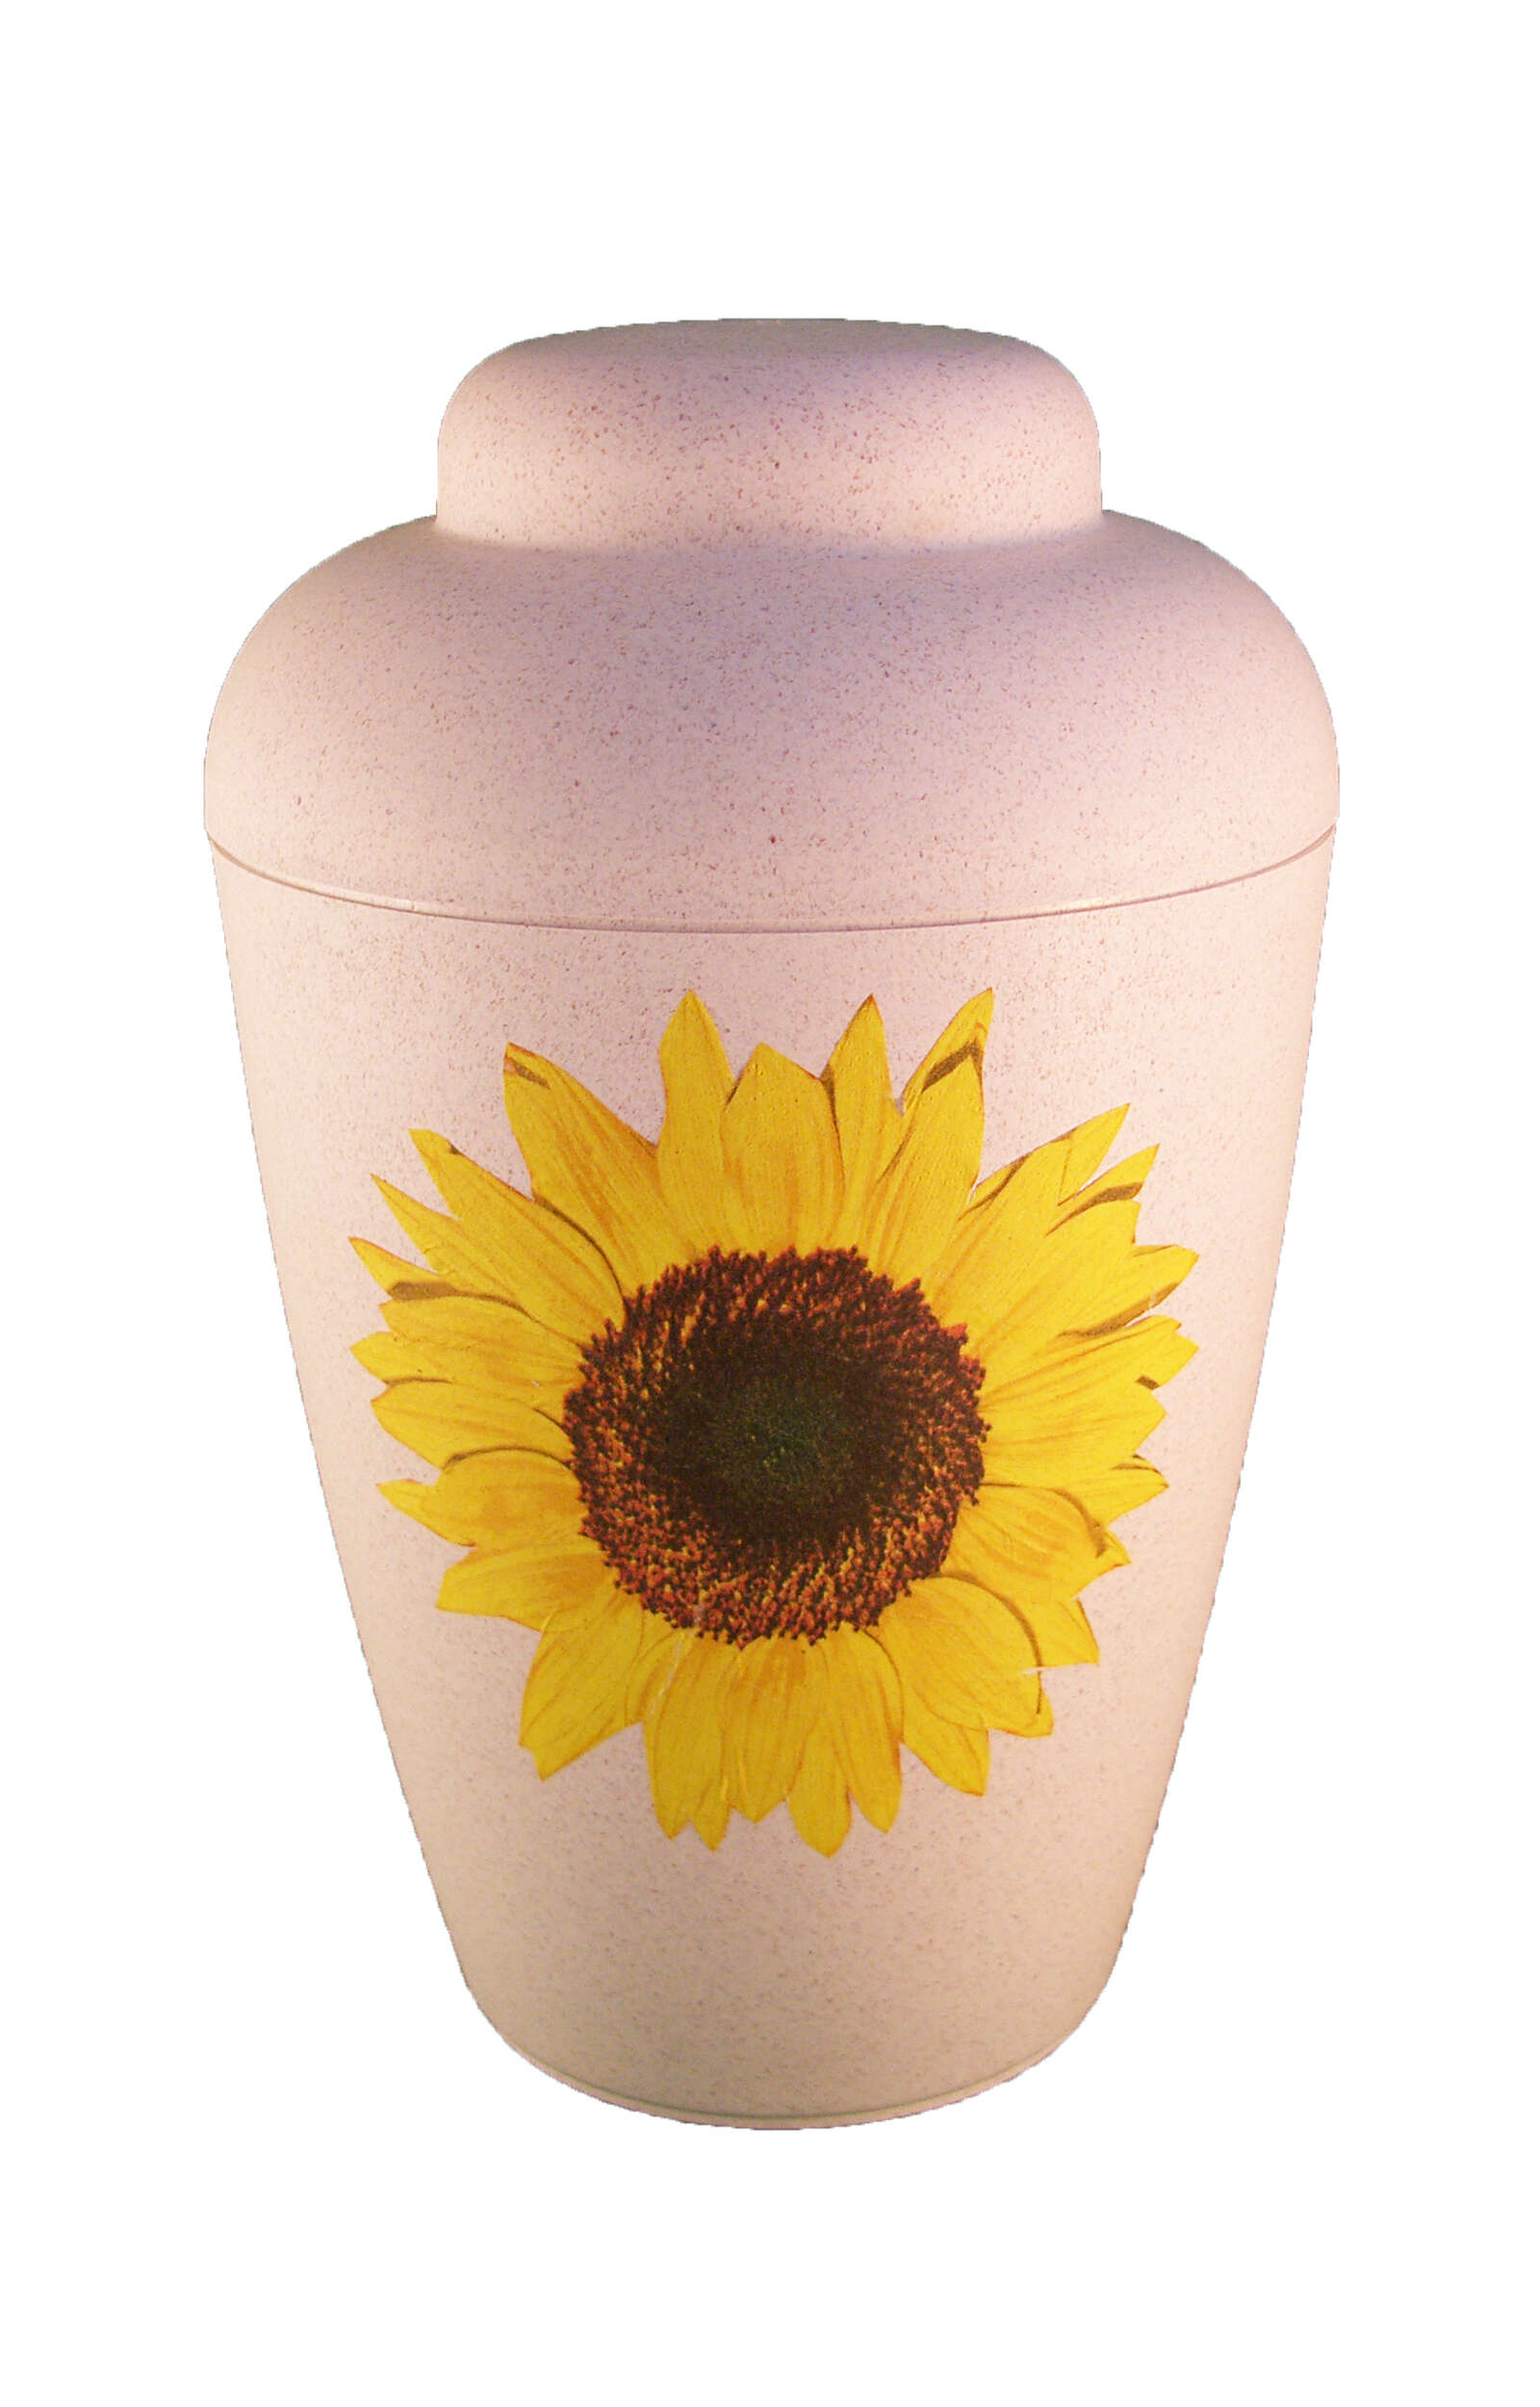 en BVS1701 biodegradable urn vale natur sunflower yellow funeral urns for human ashes